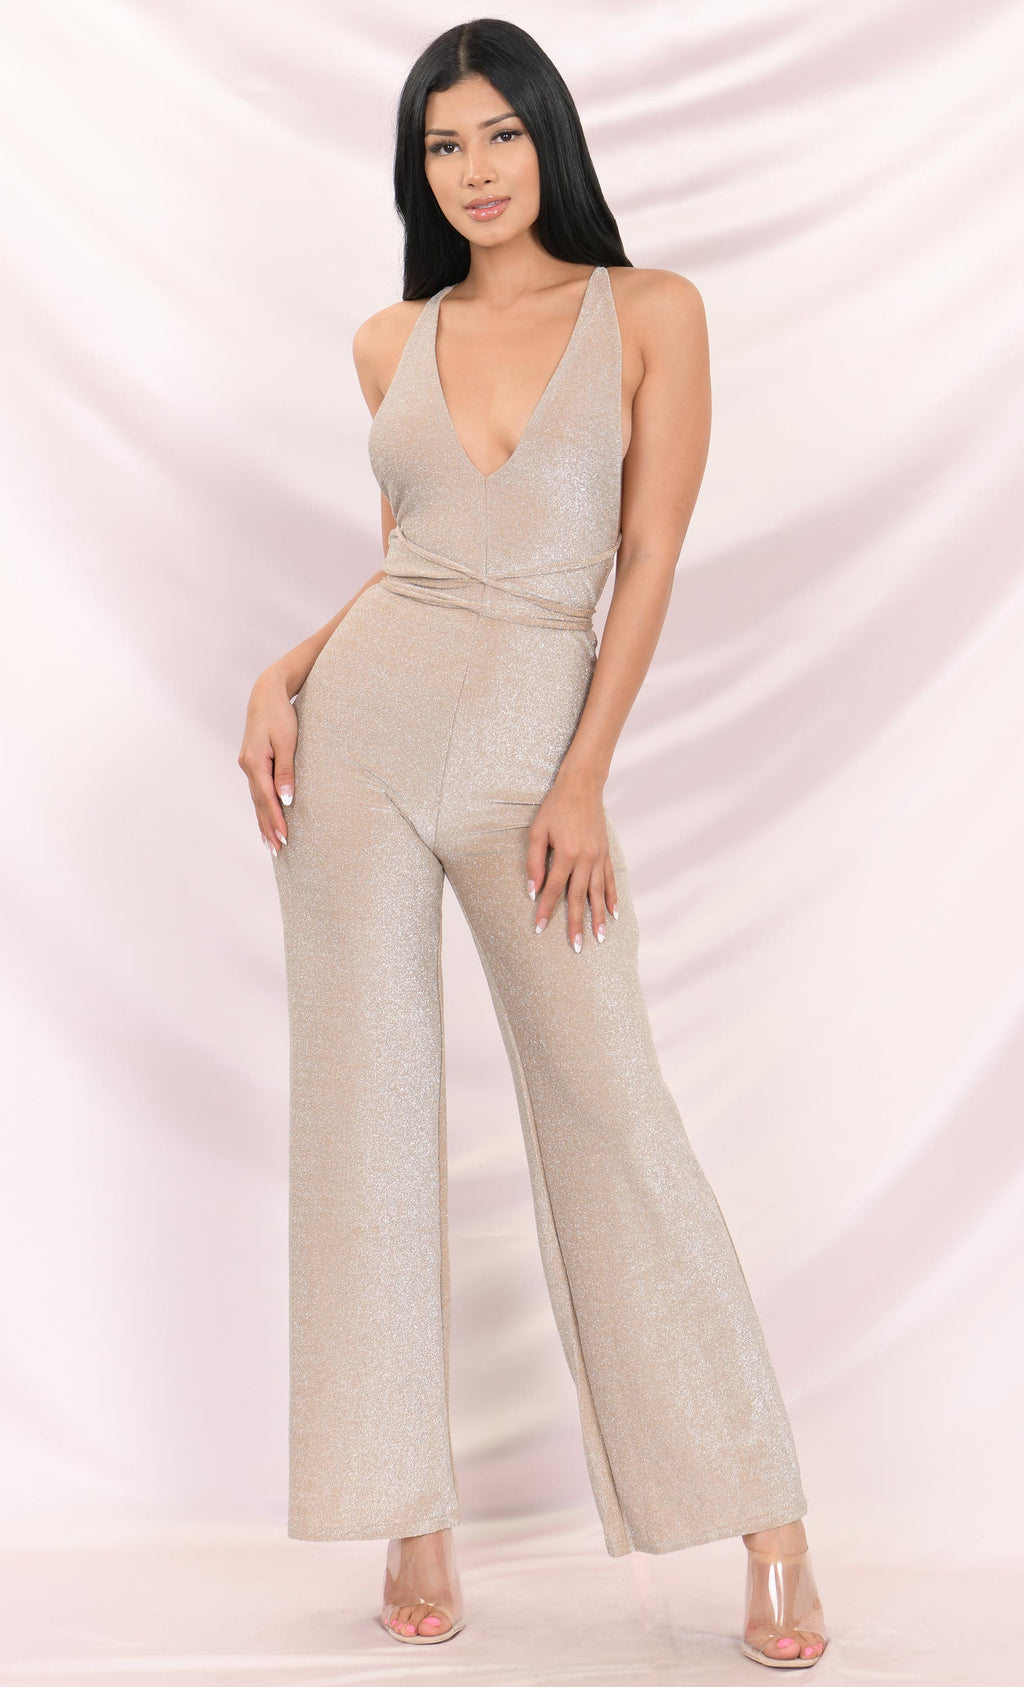 In The Glitz Sleeveless Glitter Lurex Plunge V Neck Backless Wide Leg Loose Jumpsuit - 2 Colors Available